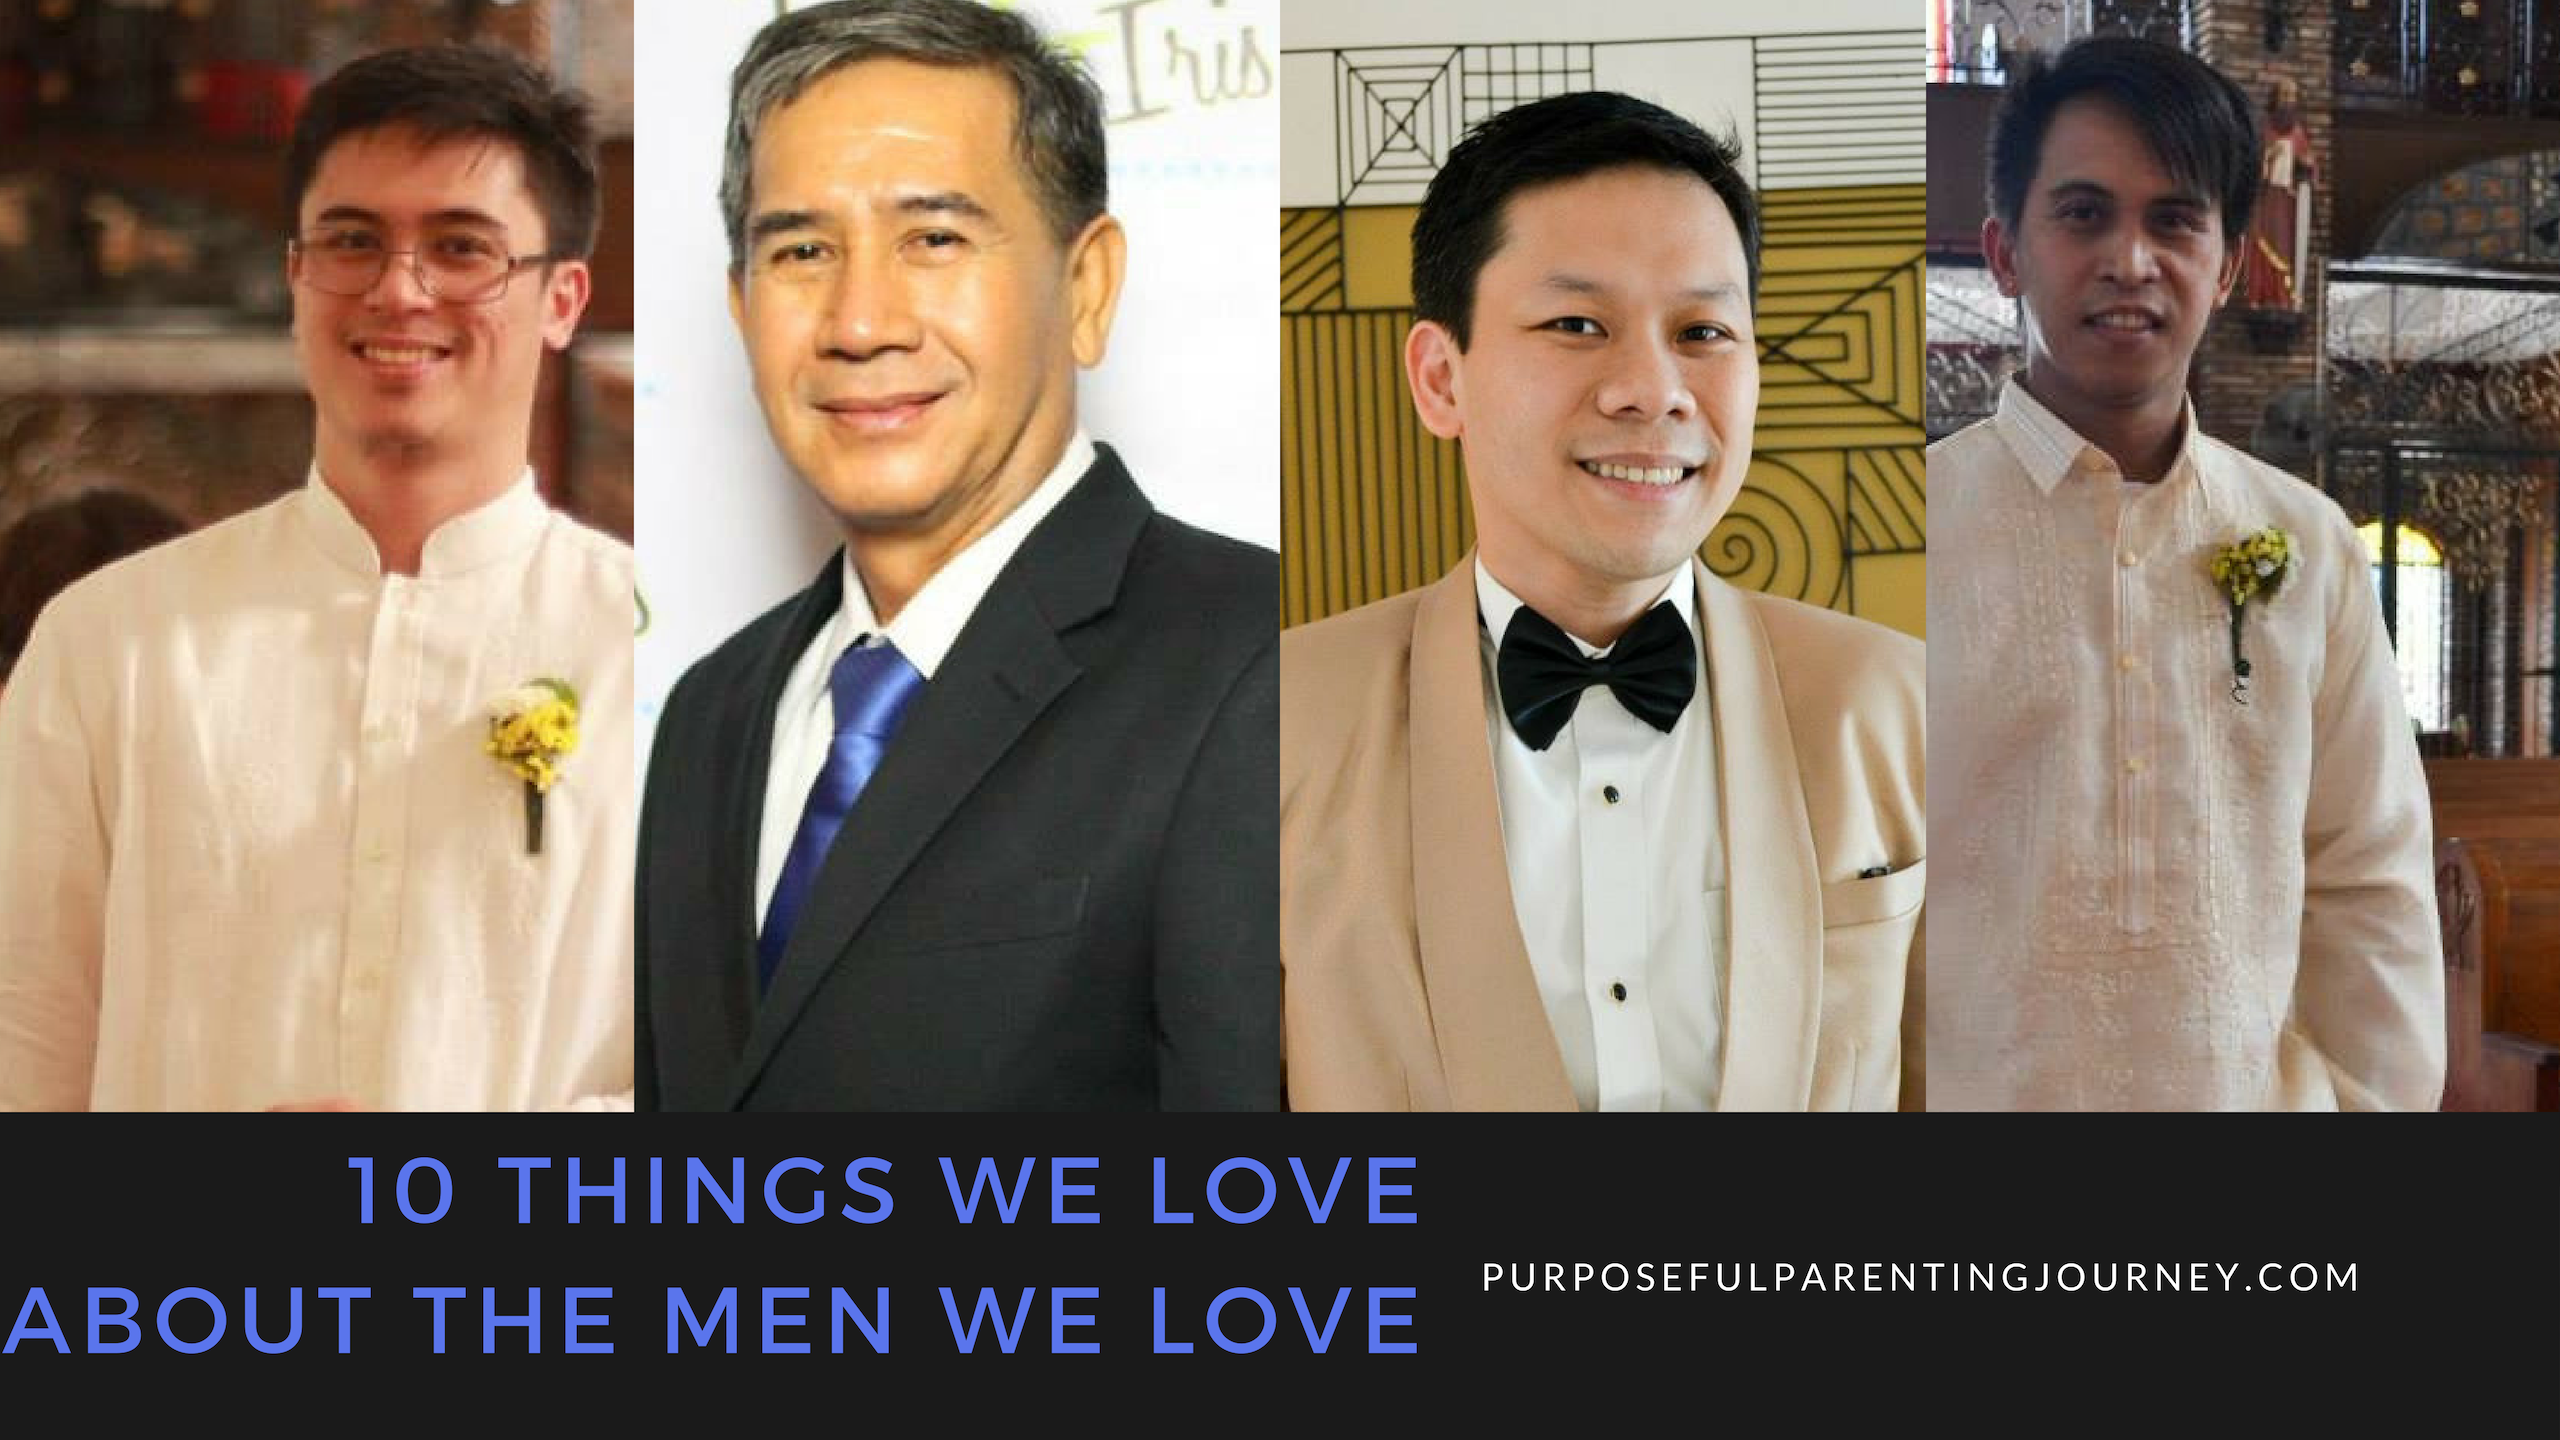 10 Things We Love About The Men We Love